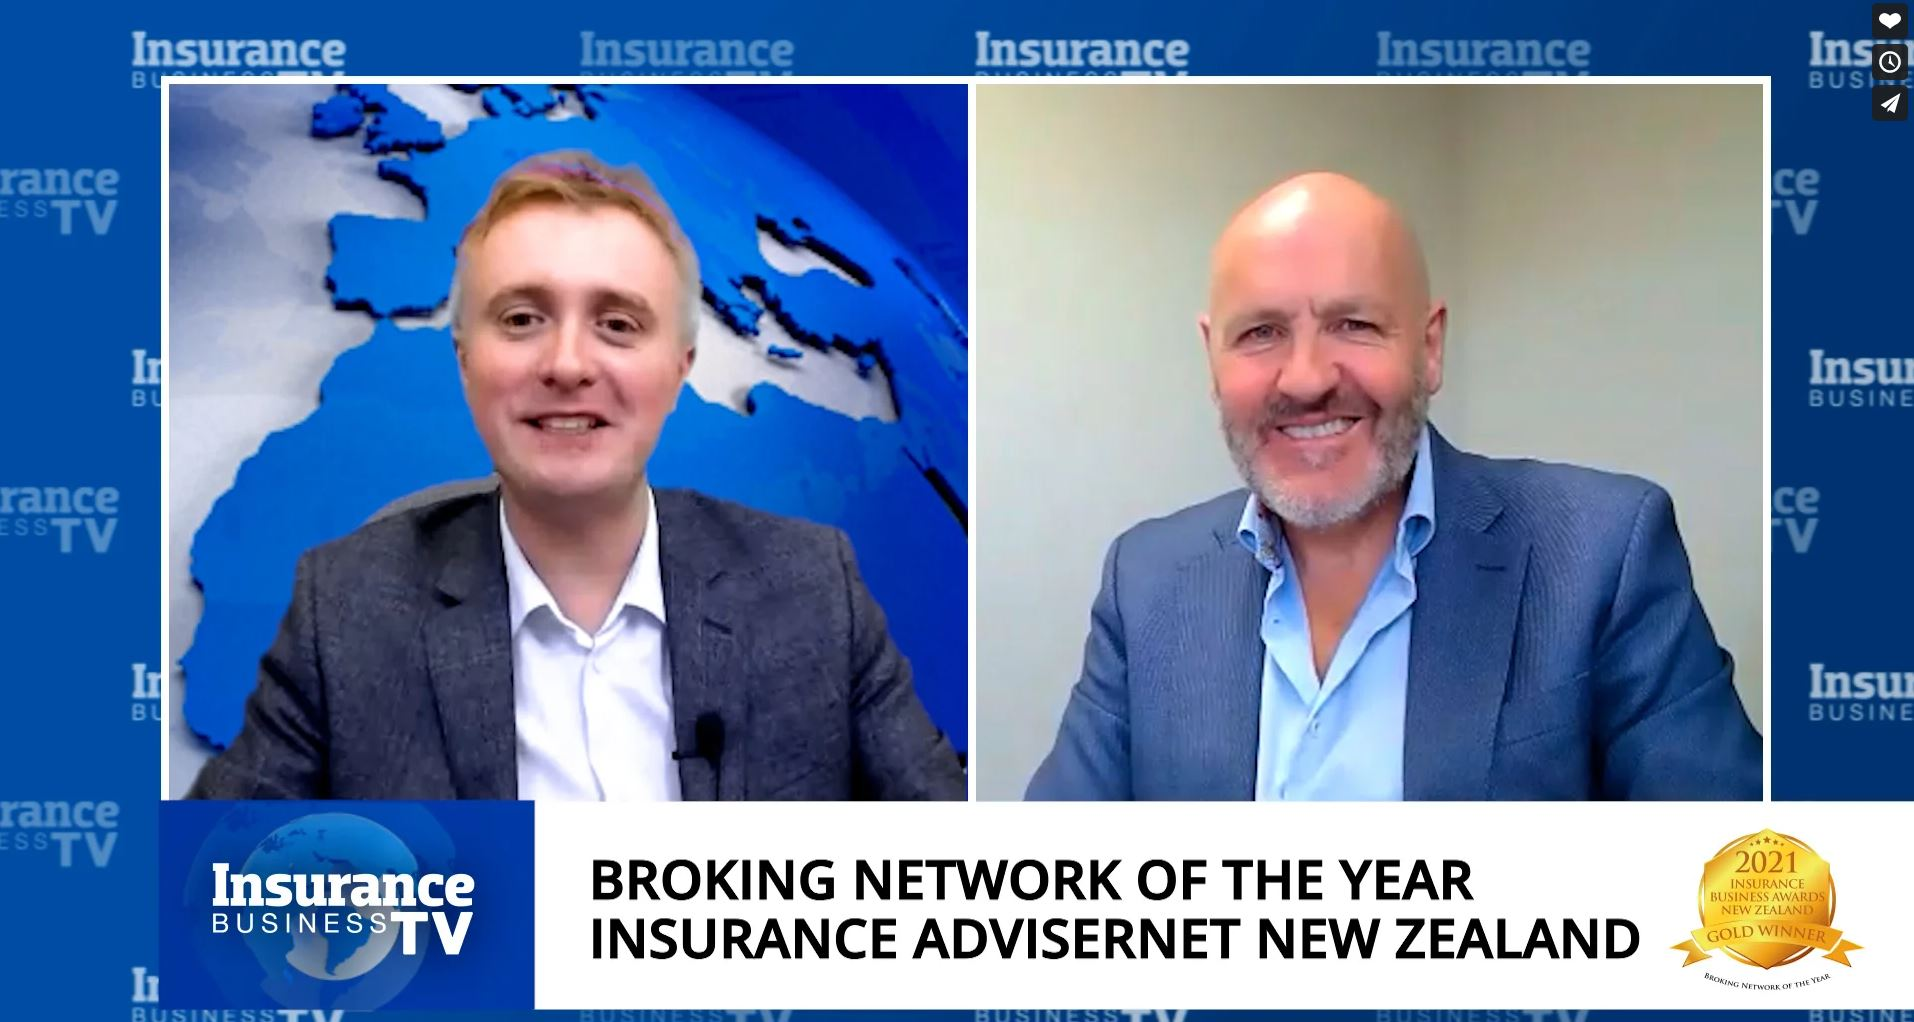 Should you go alone with your insurance business or join a network?